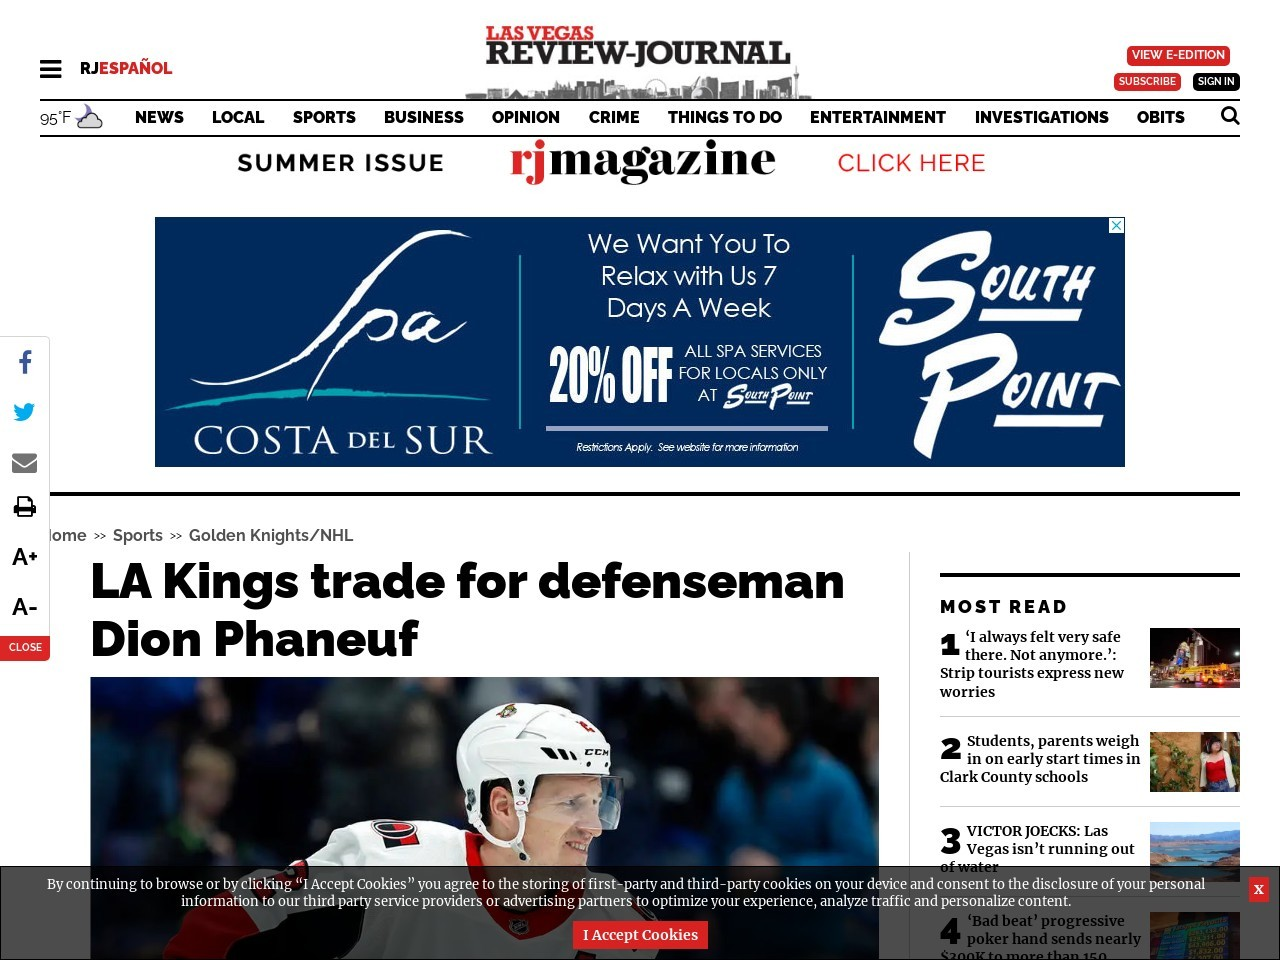 LA Kings trade for defenseman Dion Phaneuf